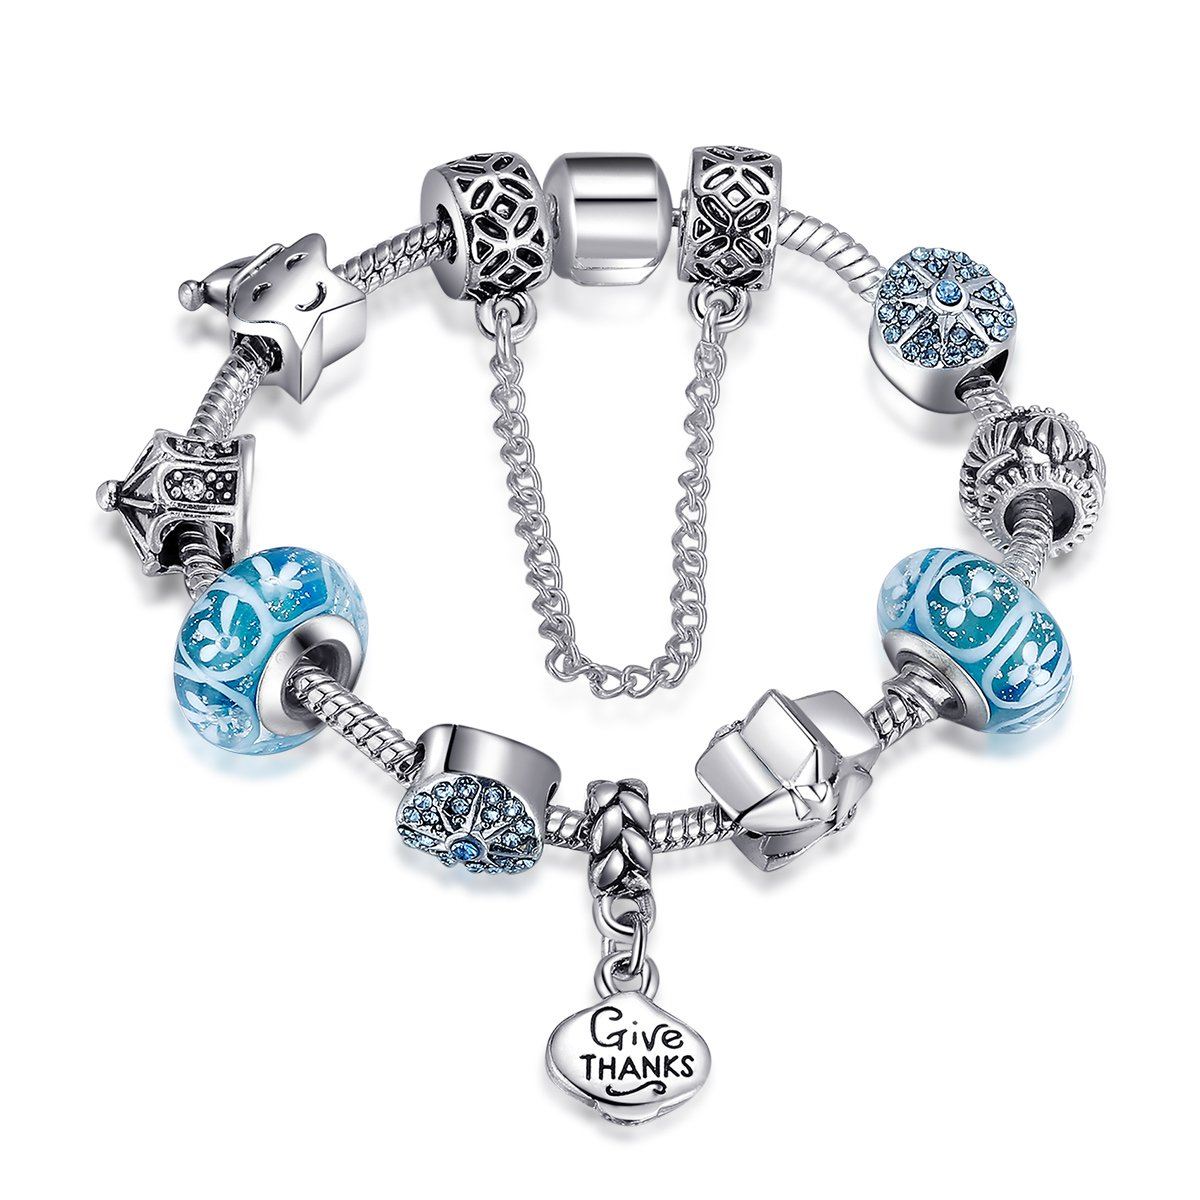 Presentski Thanksgiving Blue Charm Bracelet, Appreciation Gifts for Teachers, Friends and Family